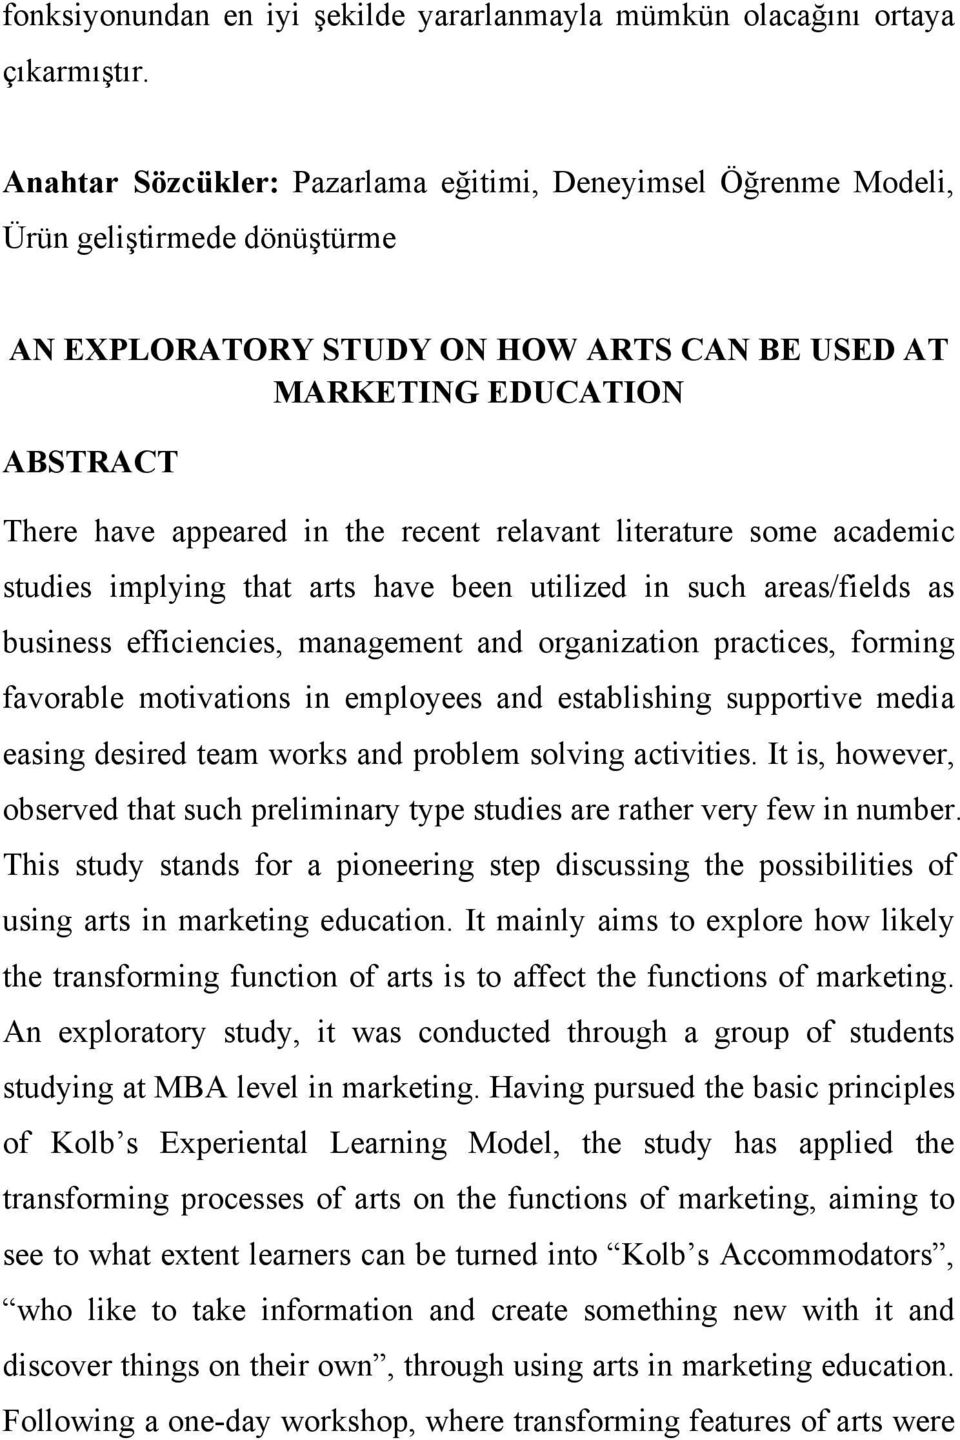 recent relavant literature some academic studies implying that arts have been utilized in such areas/fields as business efficiencies, management and organization practices, forming favorable